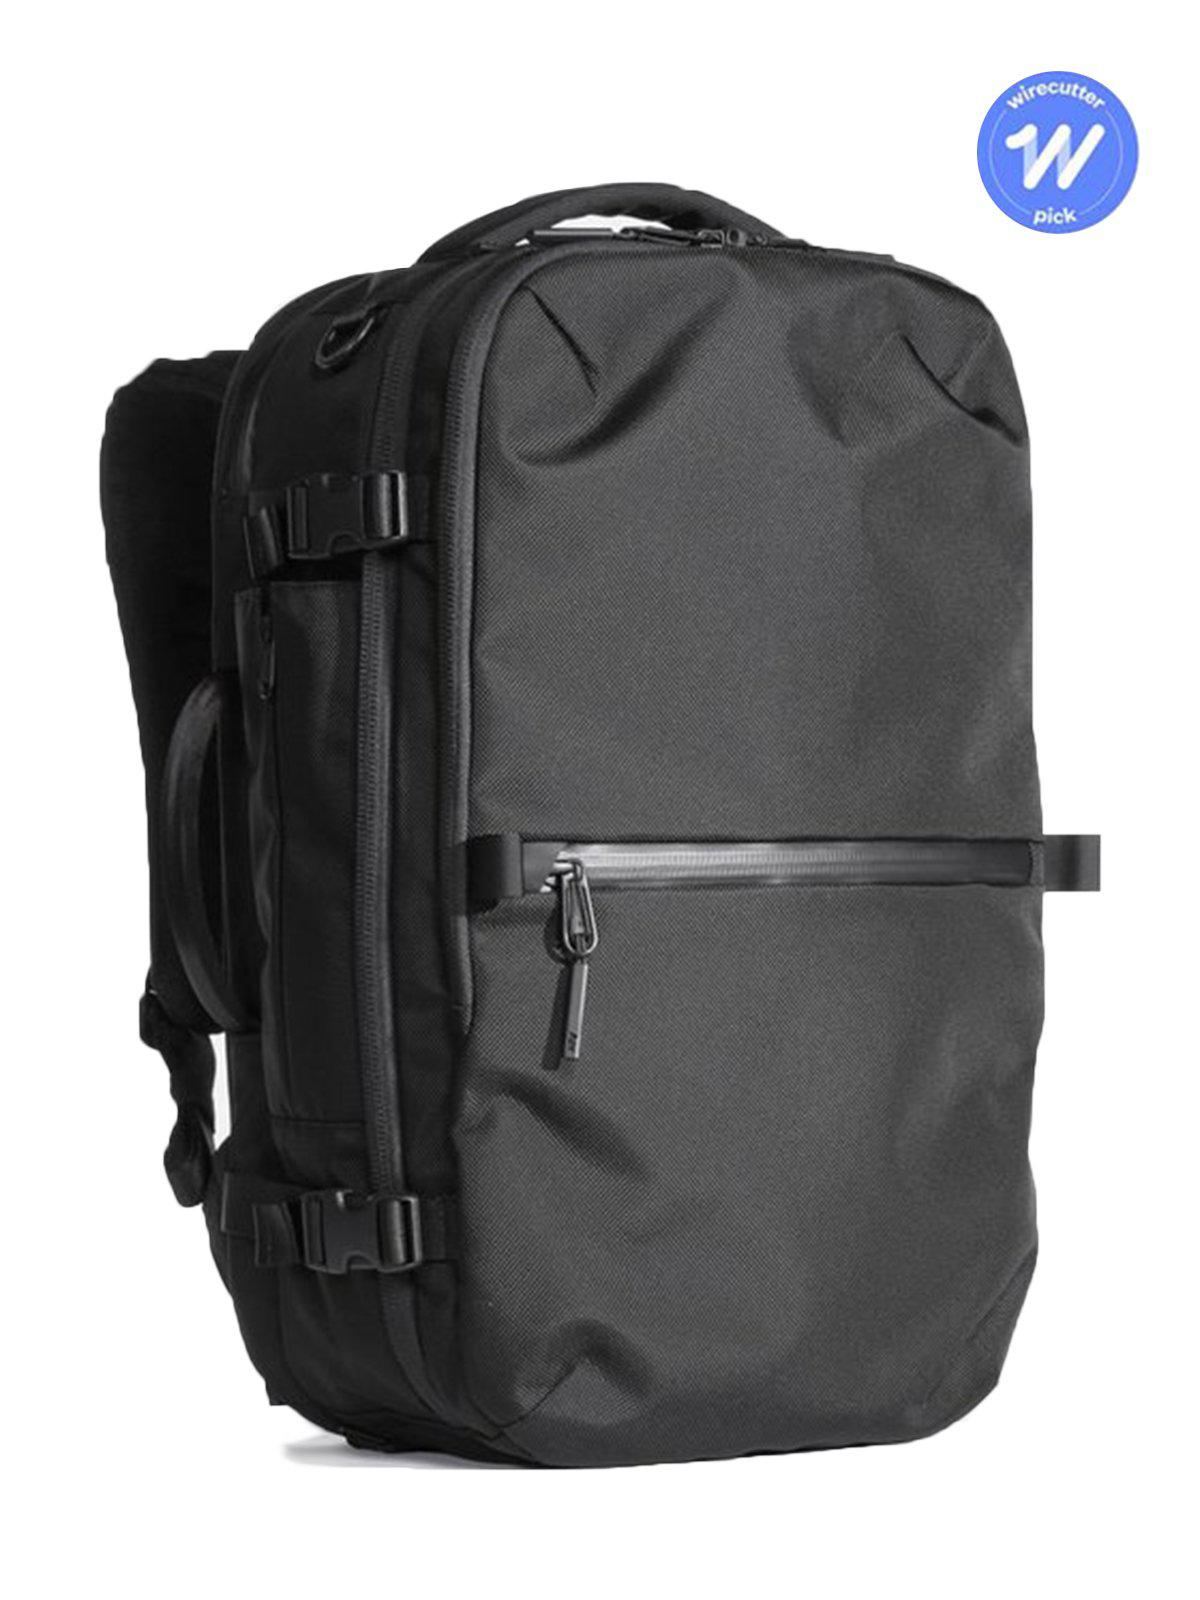 AER Travel Pack 2 Black 33L - MORE by Morello Indonesia